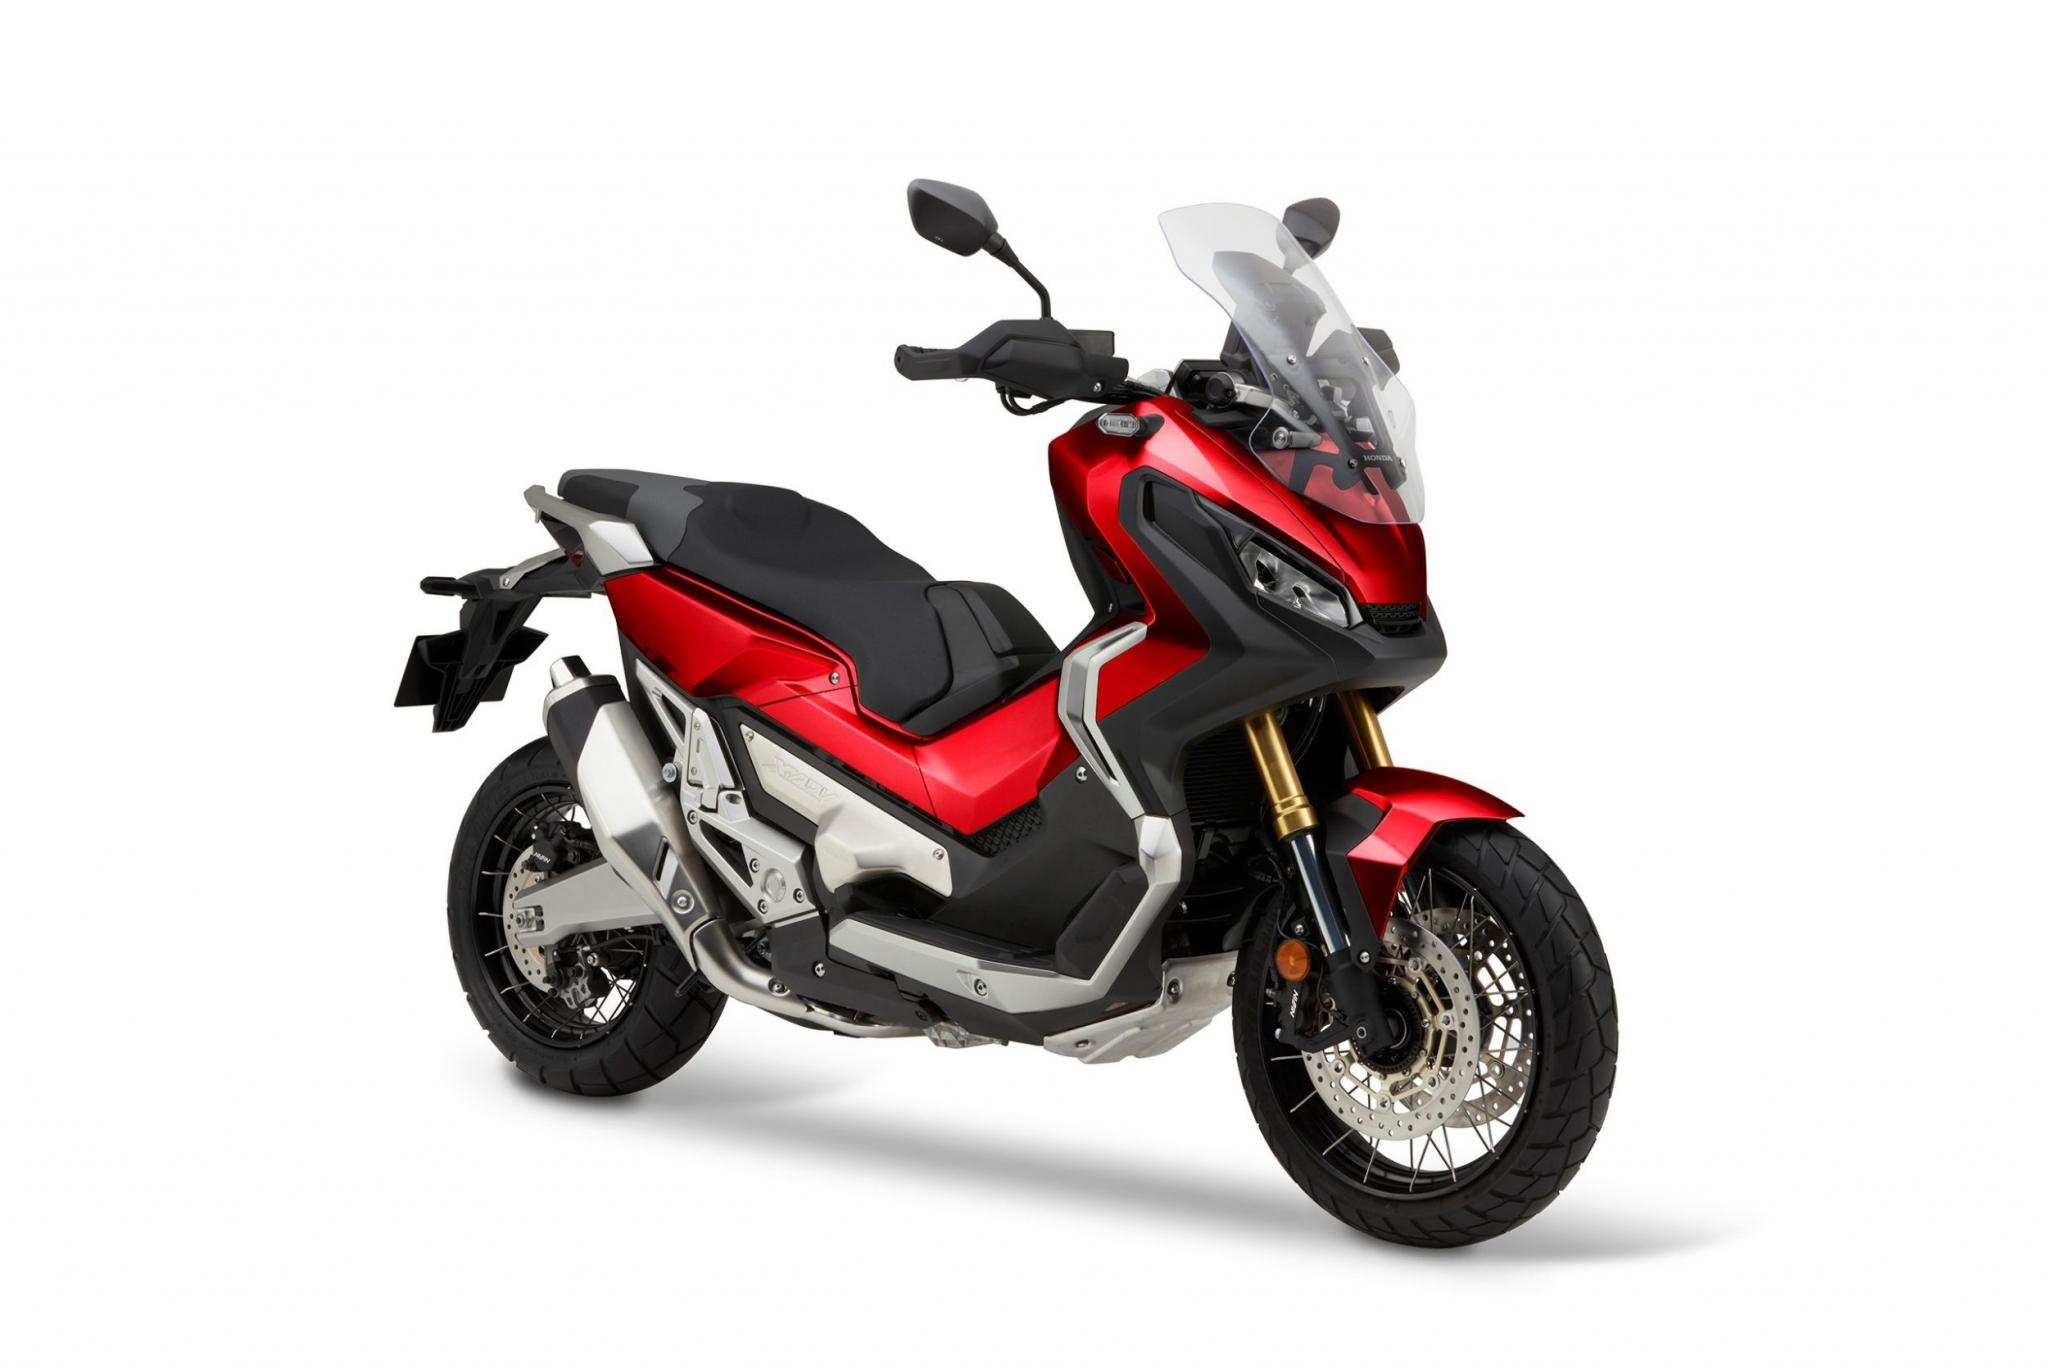 46 All New Honda X Adv 2020 Pictures